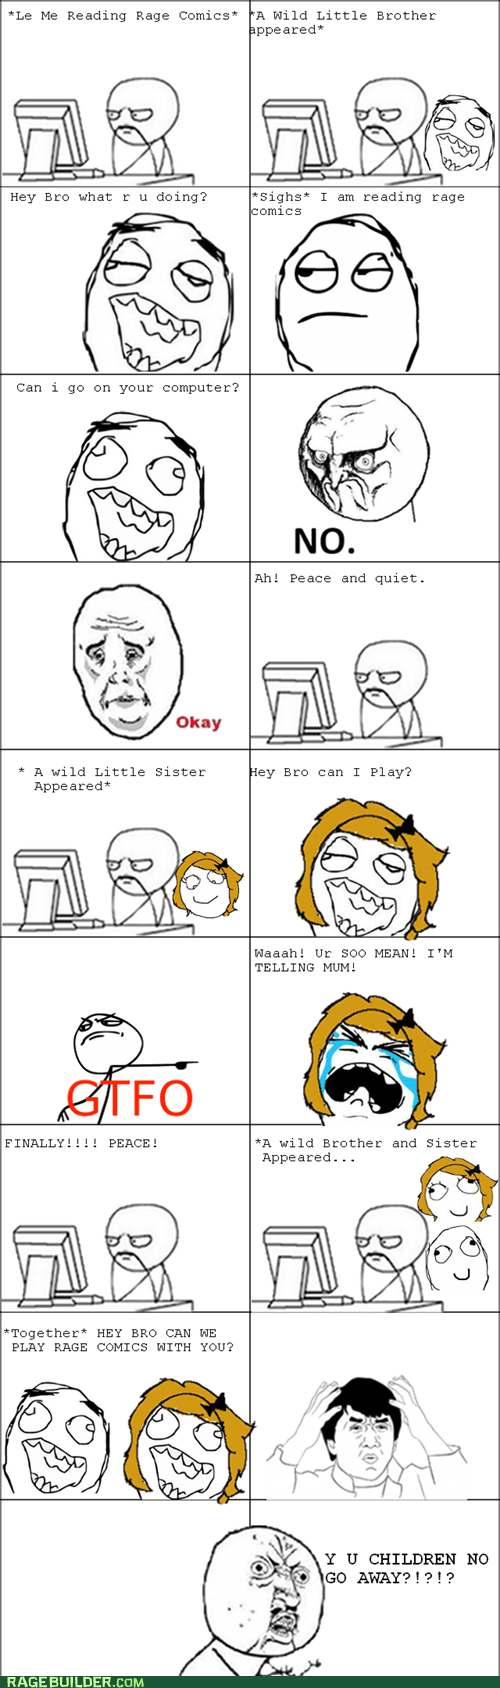 Let's Play Rage Comics!